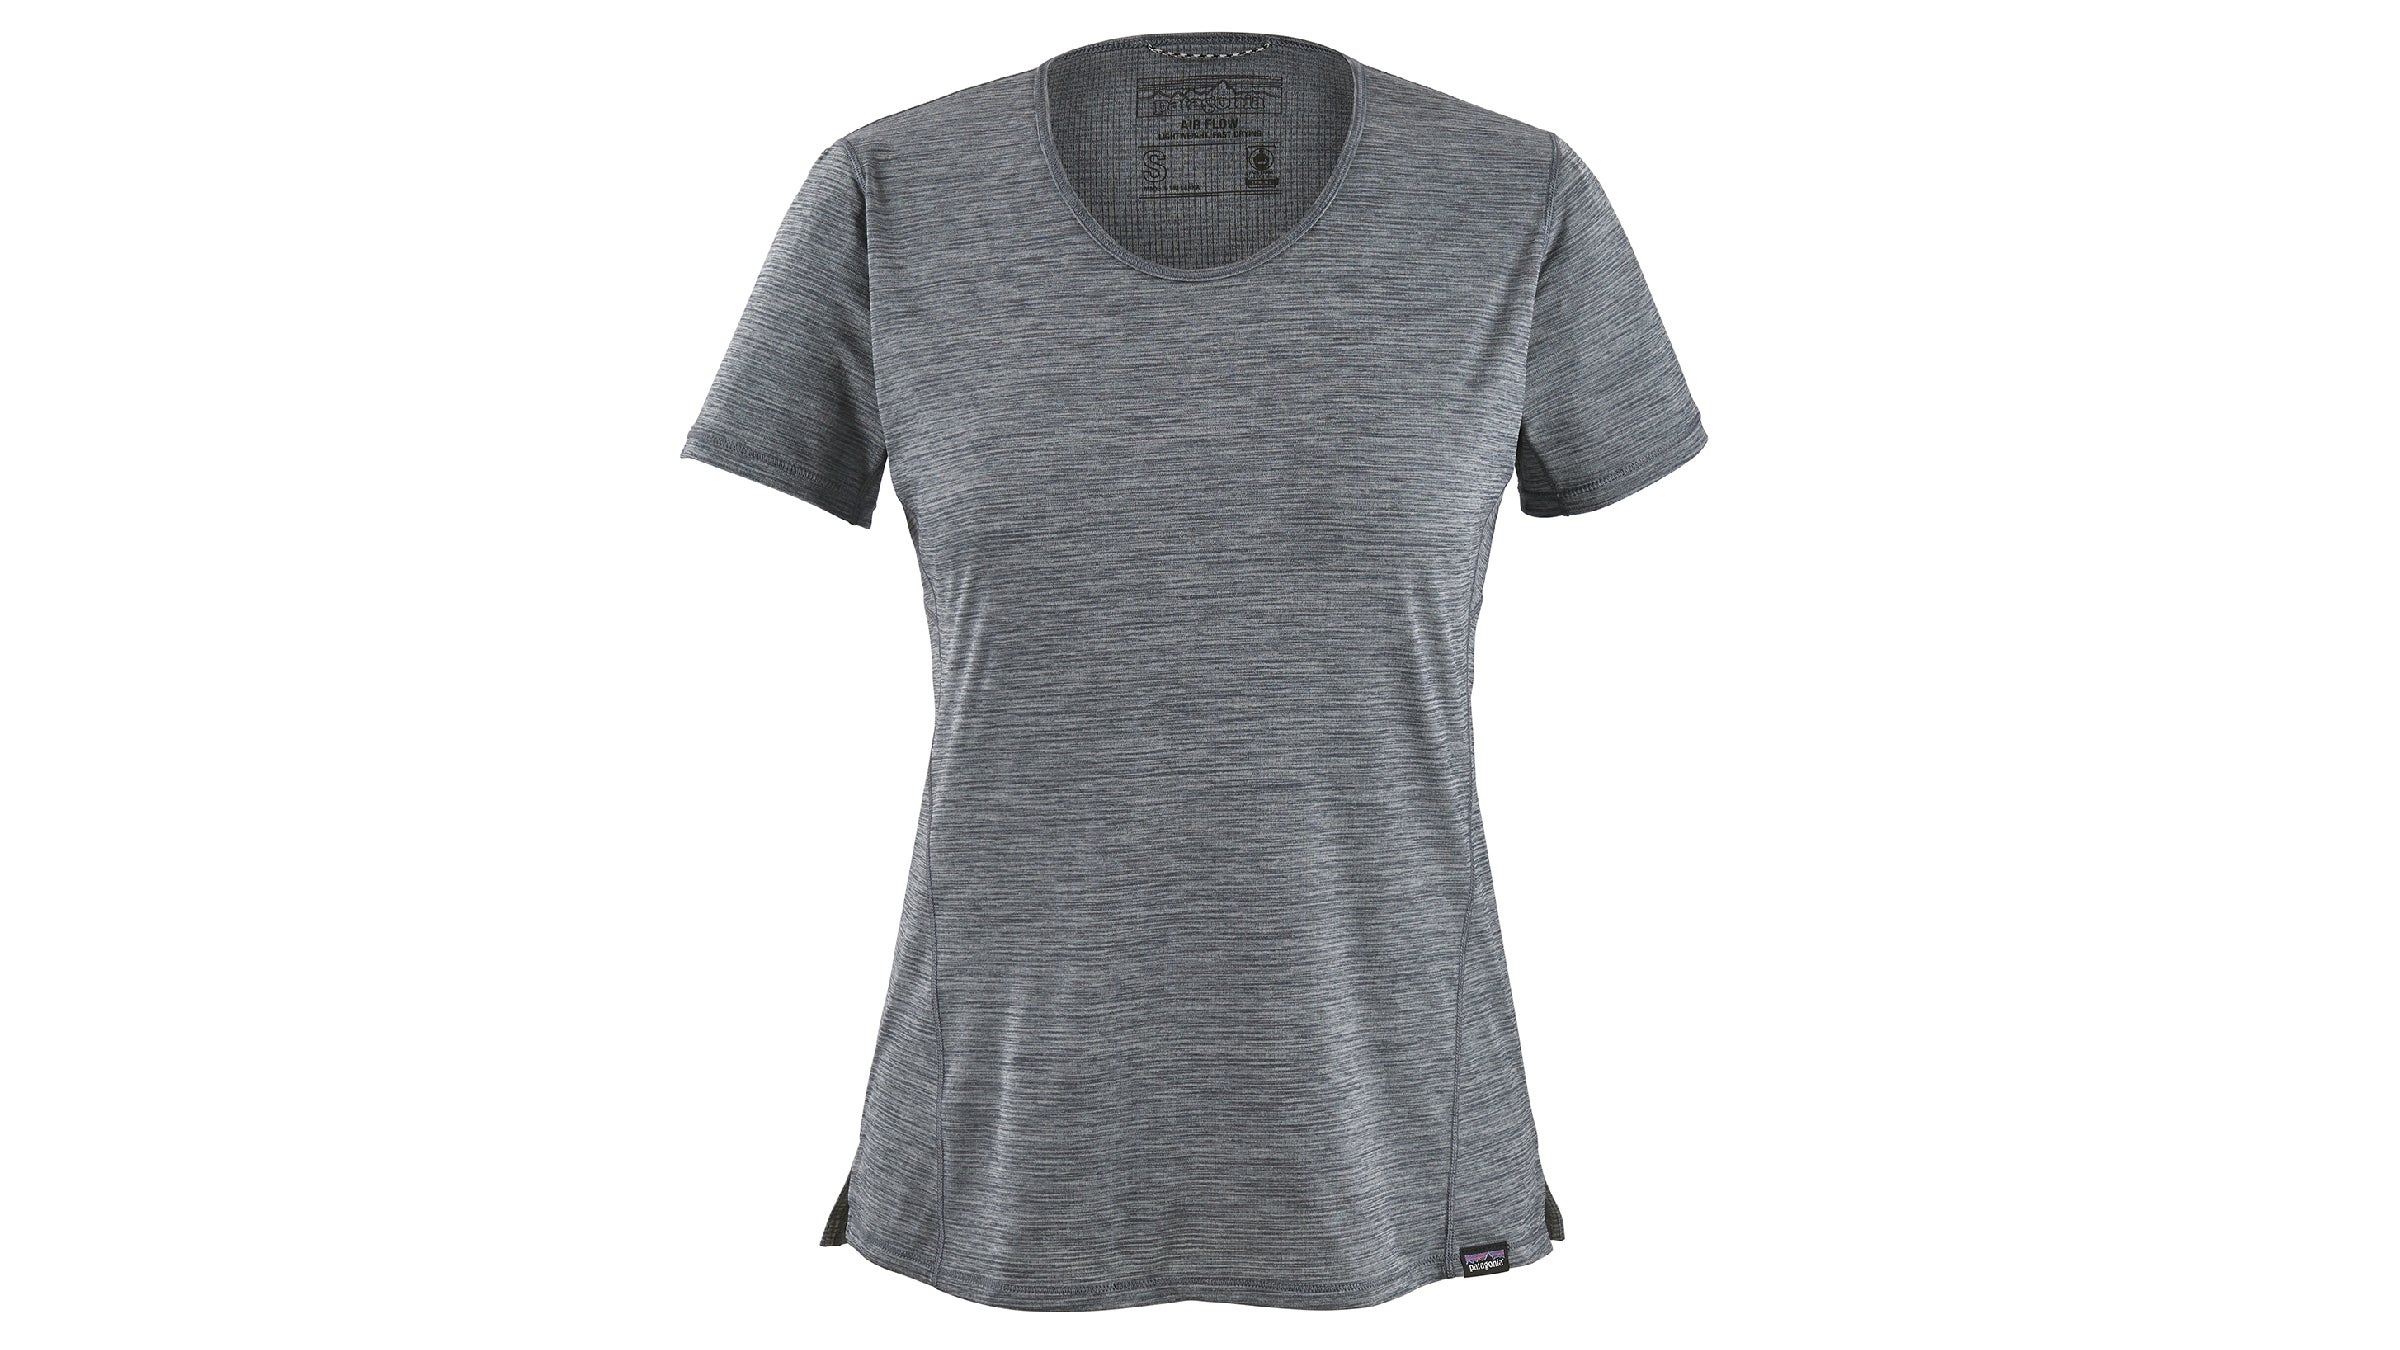 Women's Patagonia capilene cool lightweight shirt